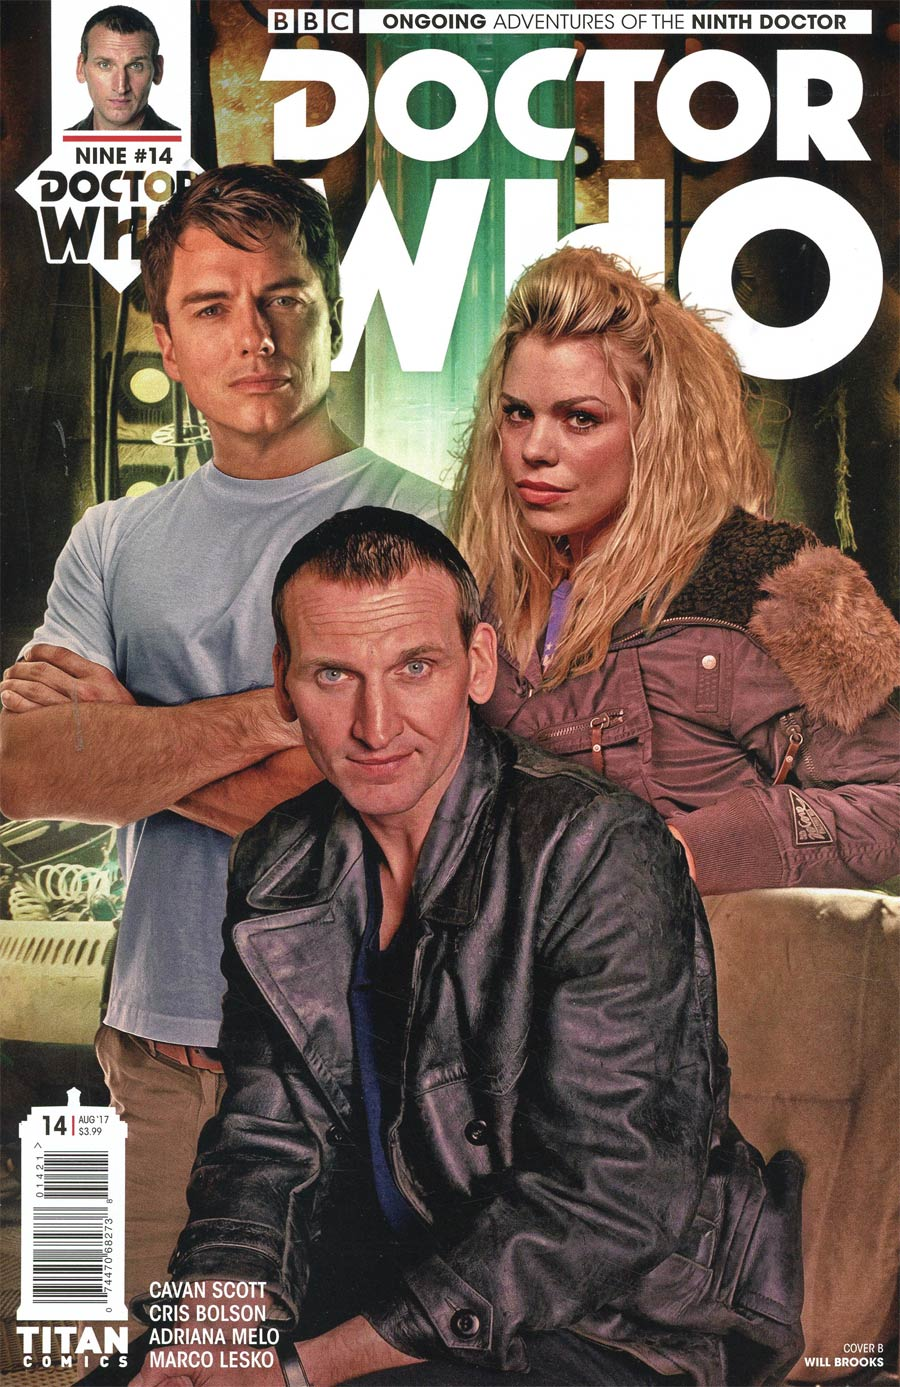 Doctor Who 9th Doctor Vol 2 #14 Cover B Variant Photo Cover